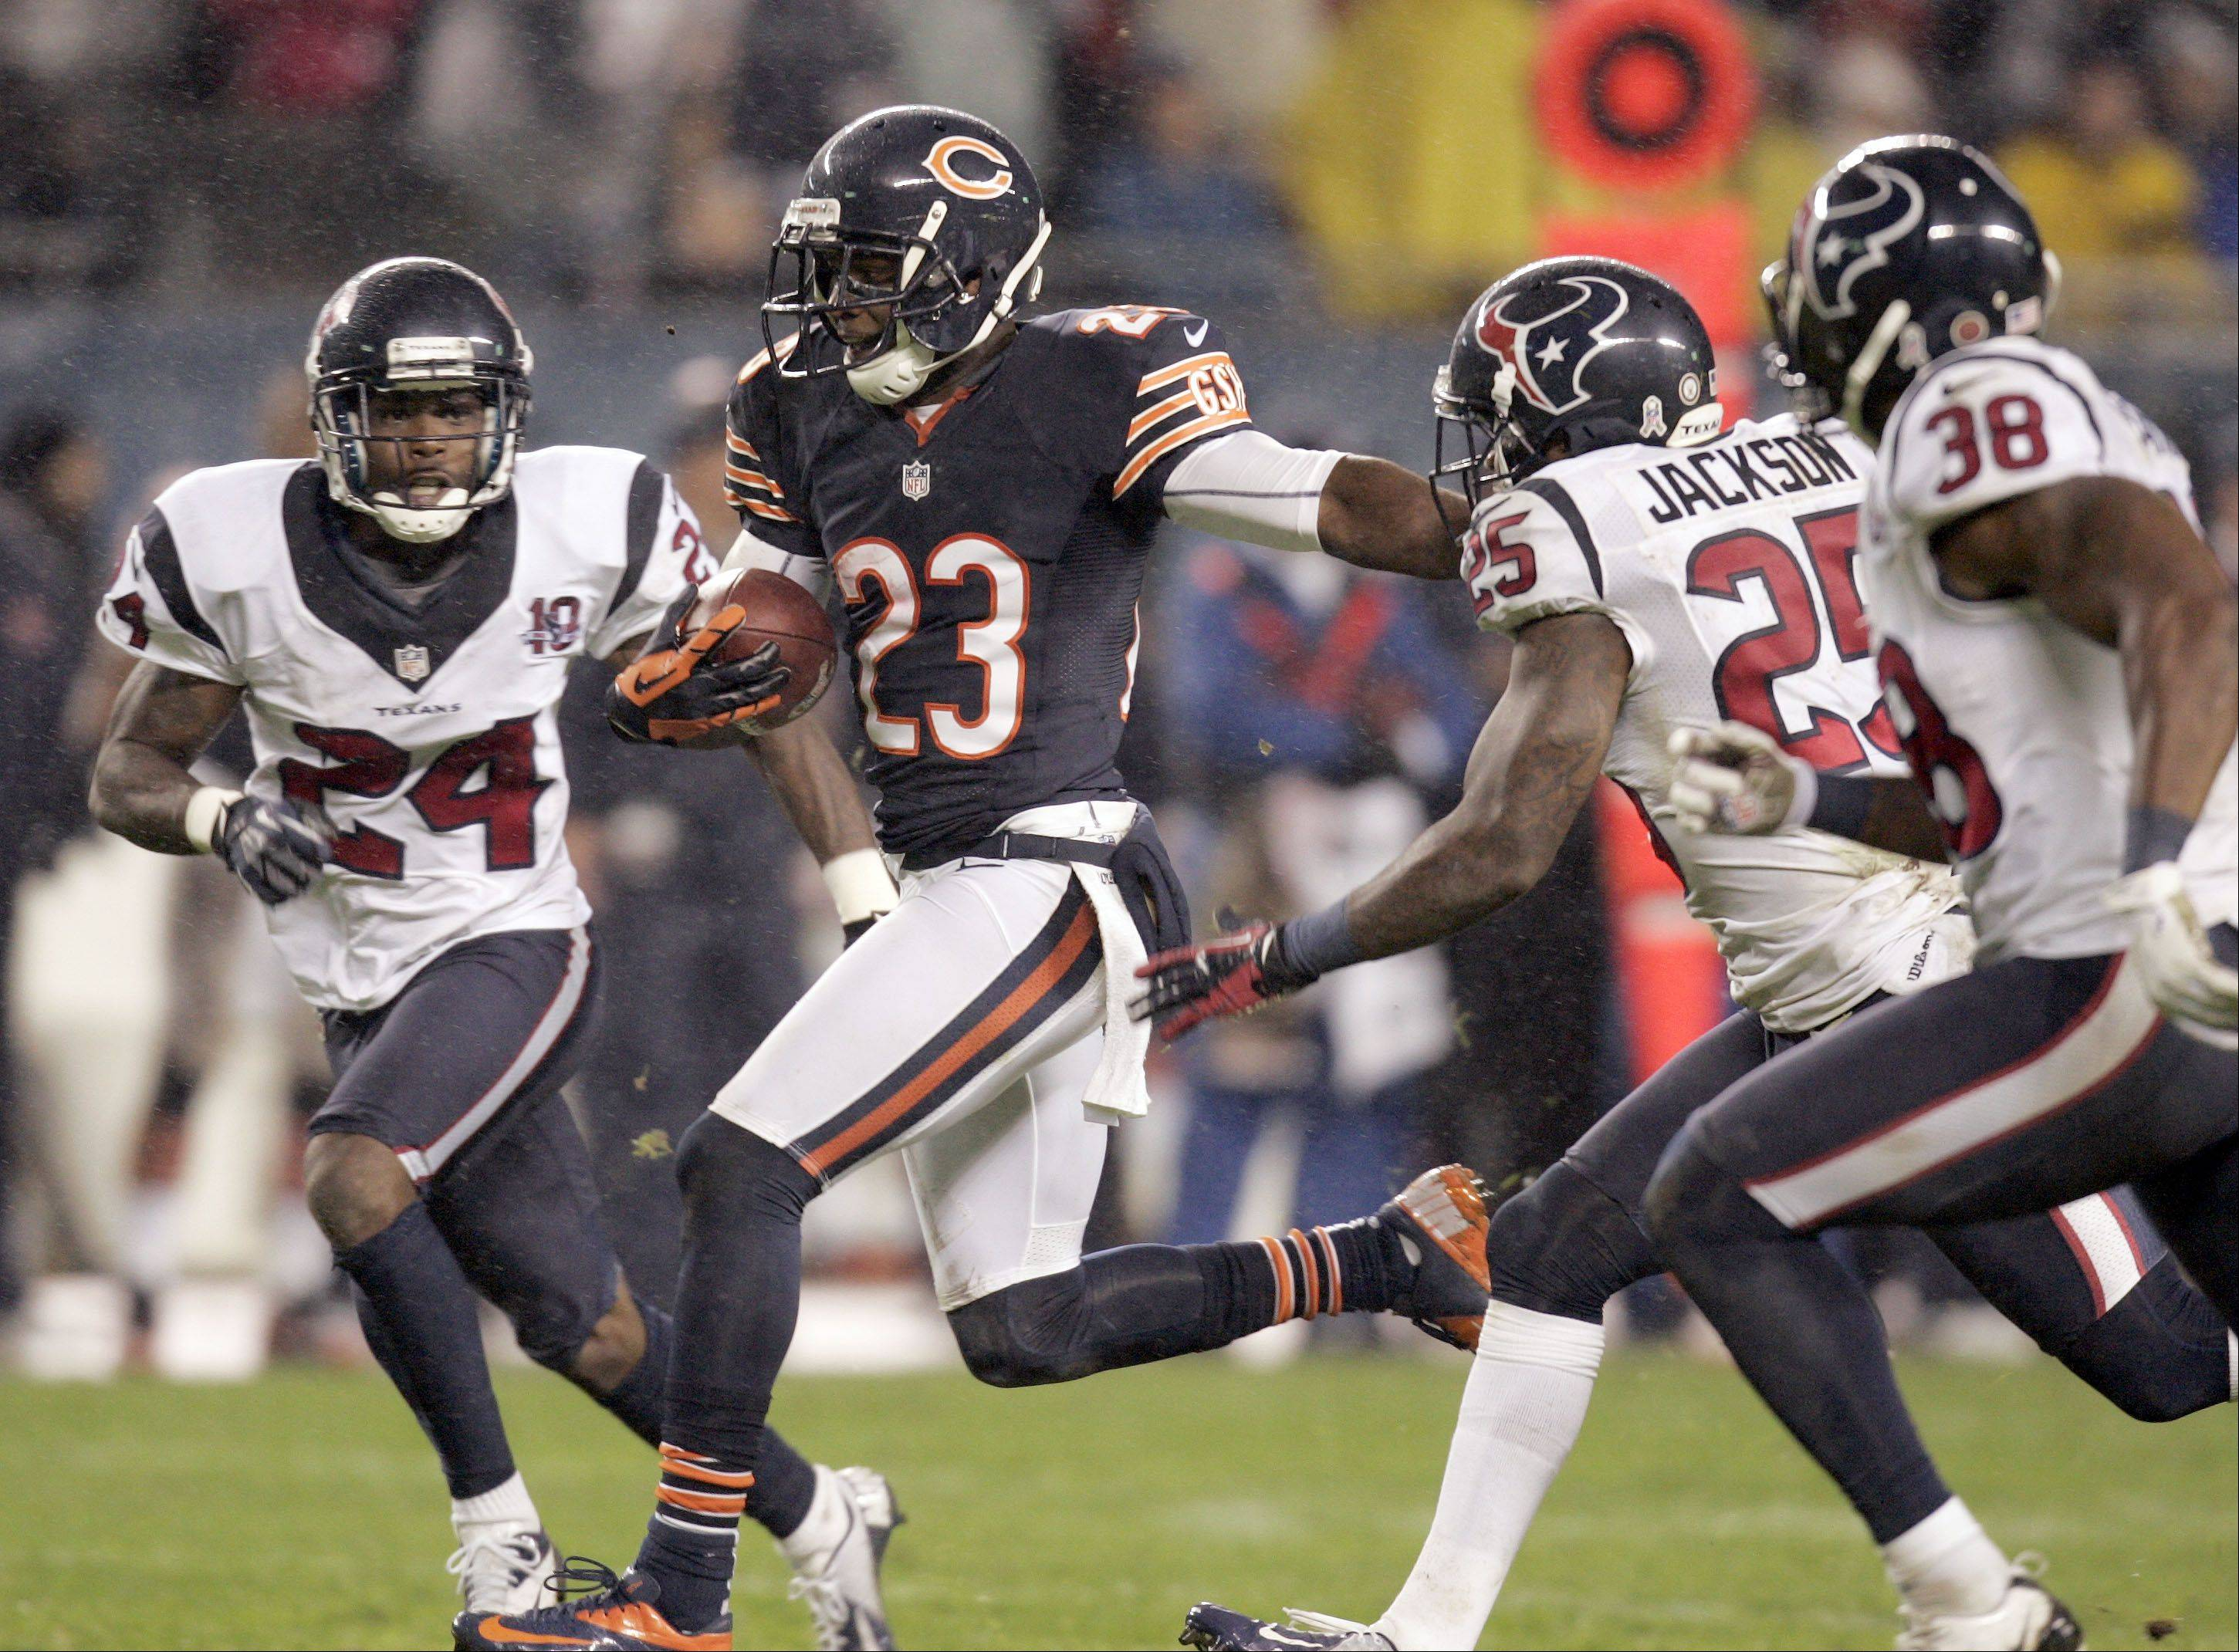 Chicago Bears wide receiver Devin Hester (23) splits Houston Texans cornerback Johnathan Joseph (24) and cornerback Kareem Jackson (25) on a play that was called back during the game Sunday November 11, 2012 at Soldier Field in Chicago.